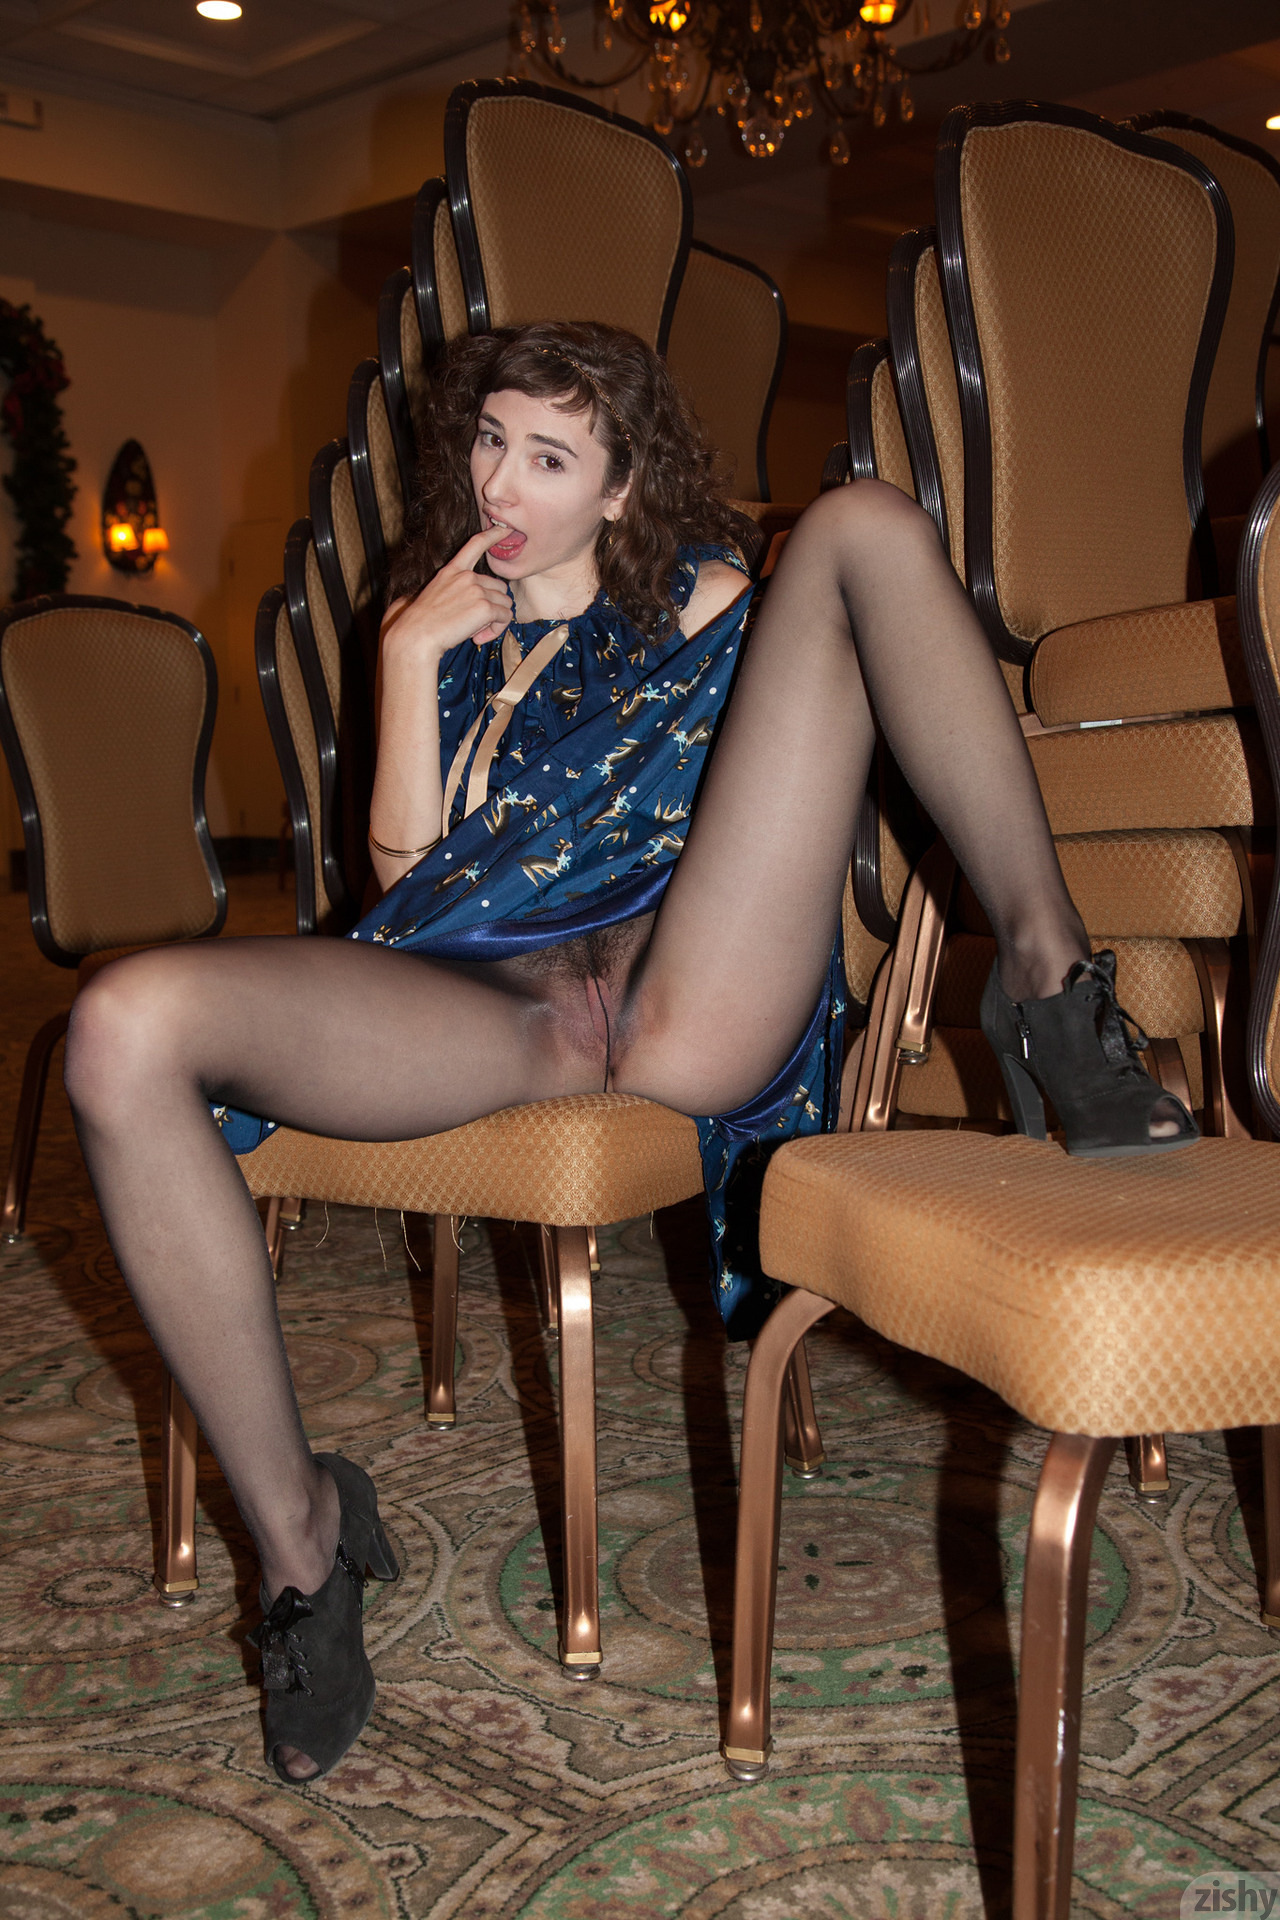 Words... upskirt pantyhose pussy can not